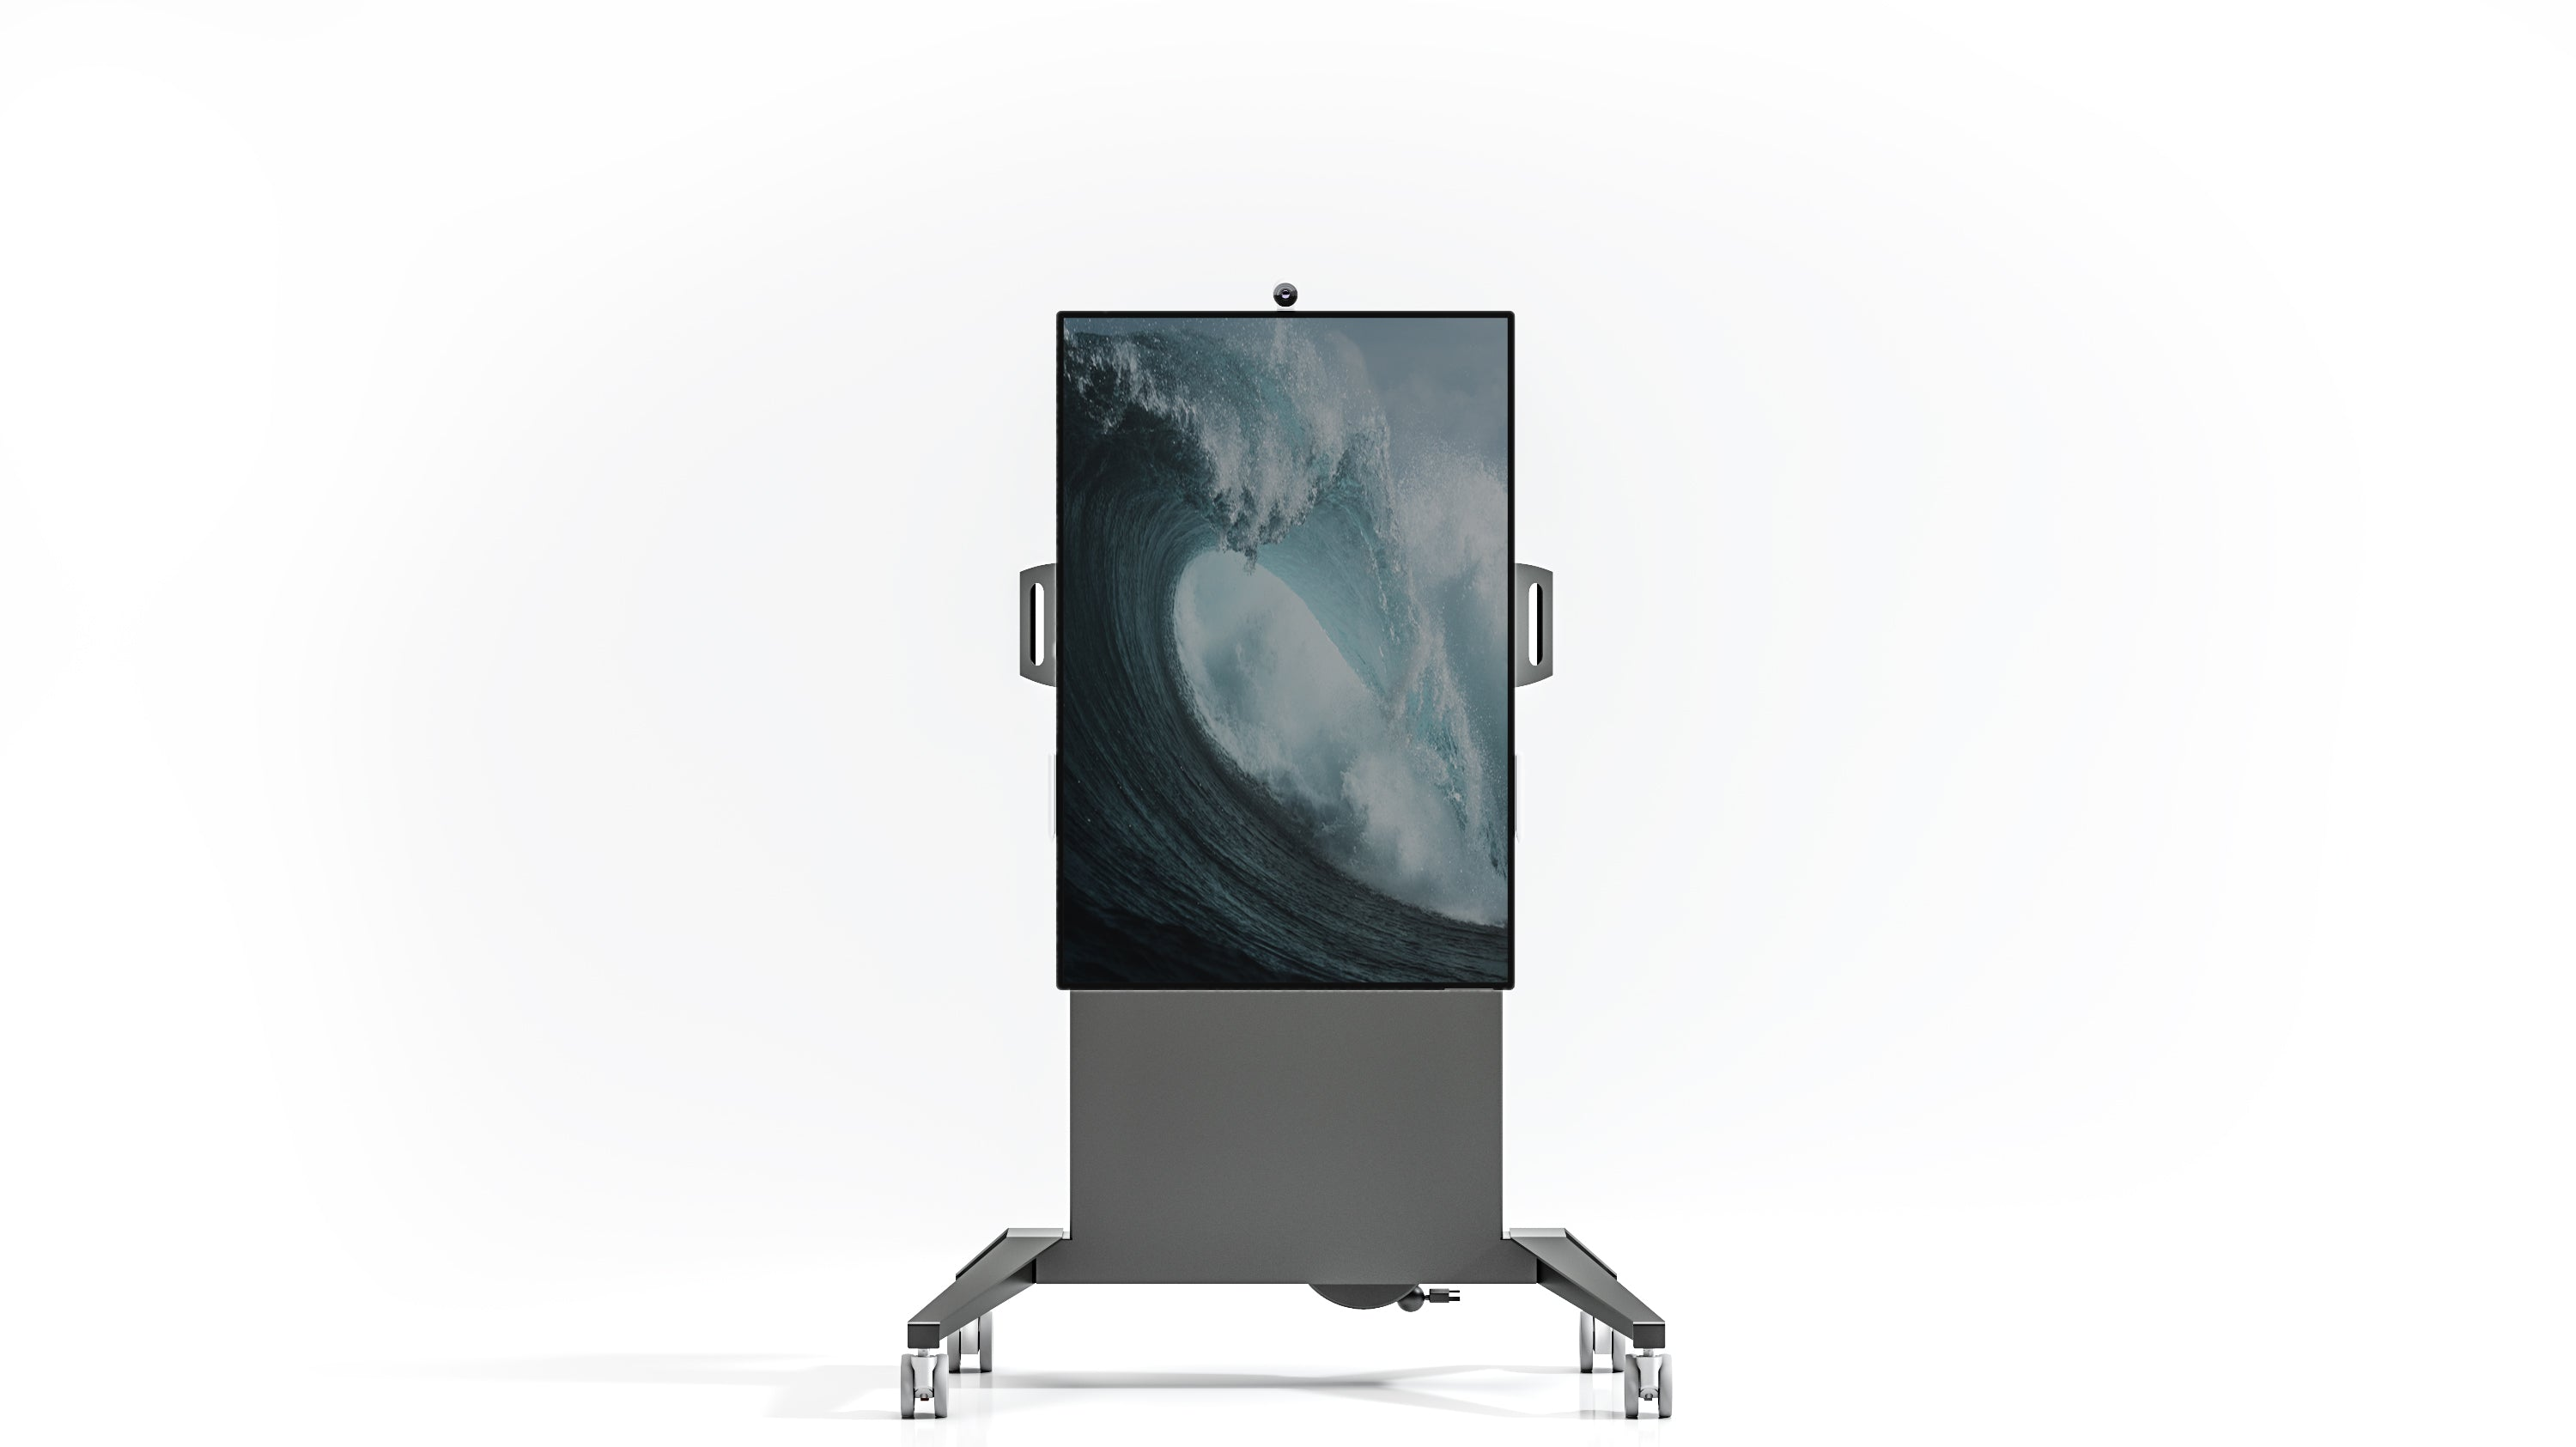 Fixed Height Mobile Cart for Microsoft Surface Hub 2s